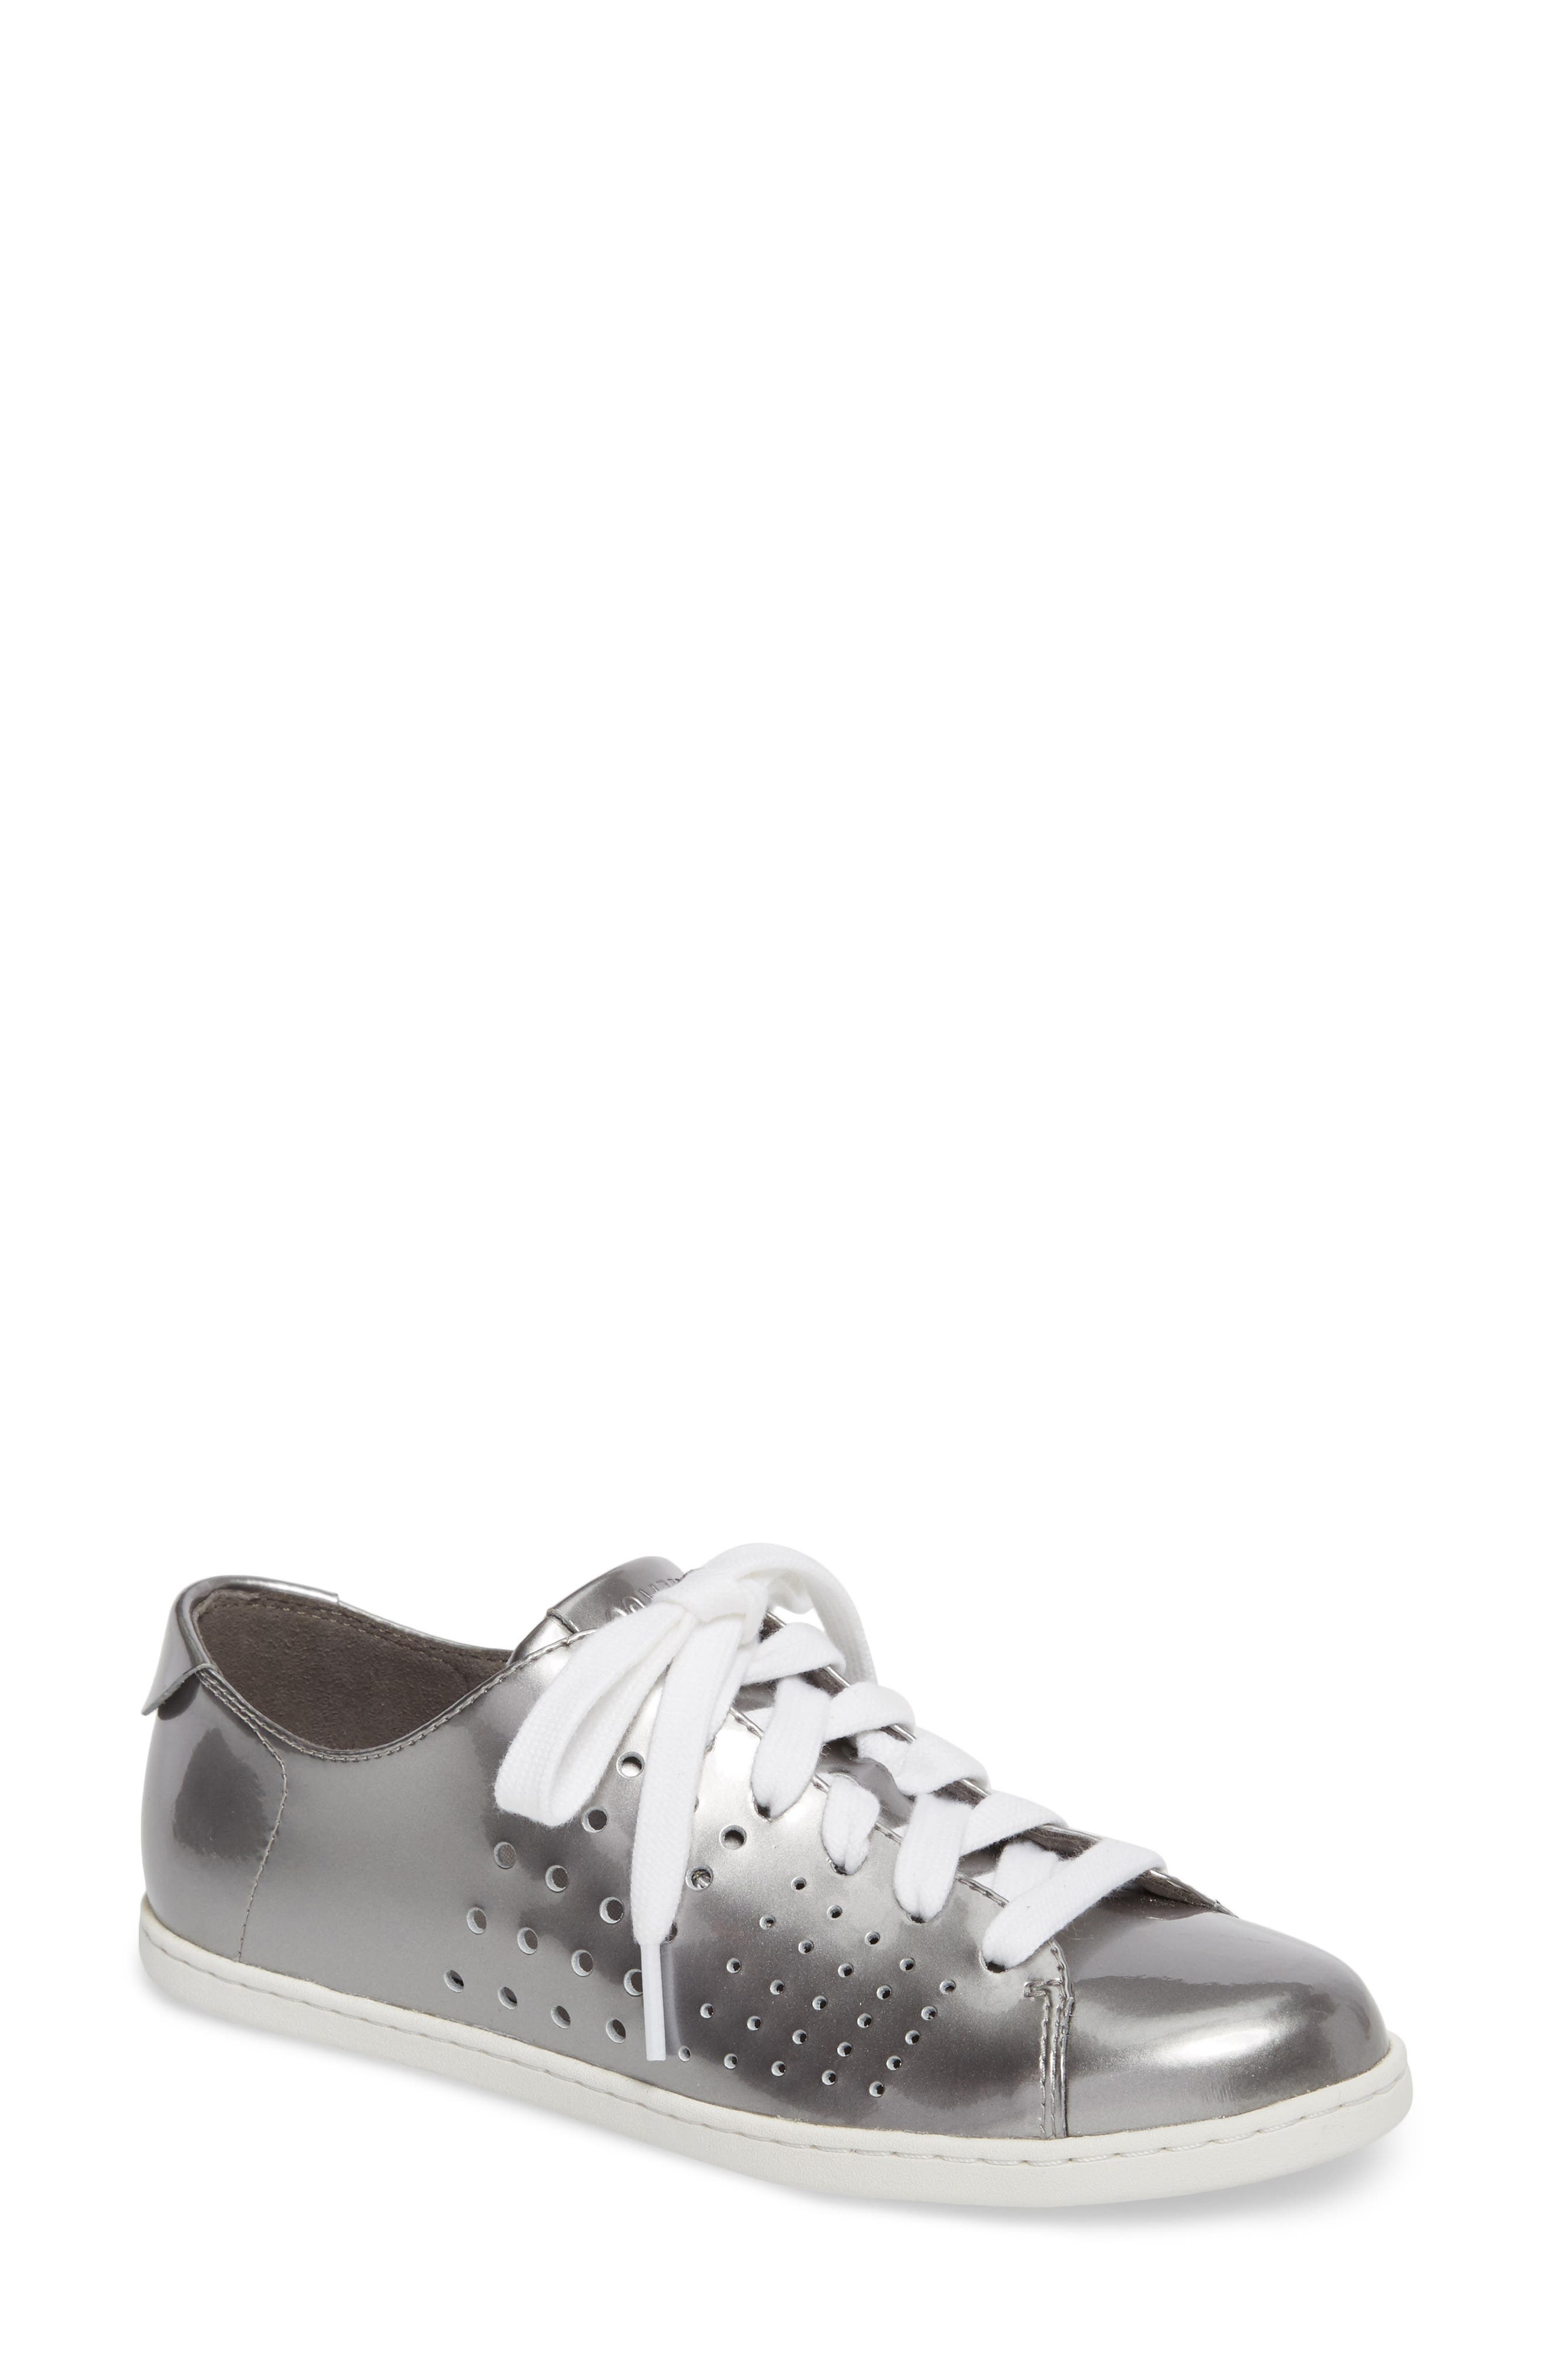 Twins Perforated Low Top Sneaker,                         Main,                         color,